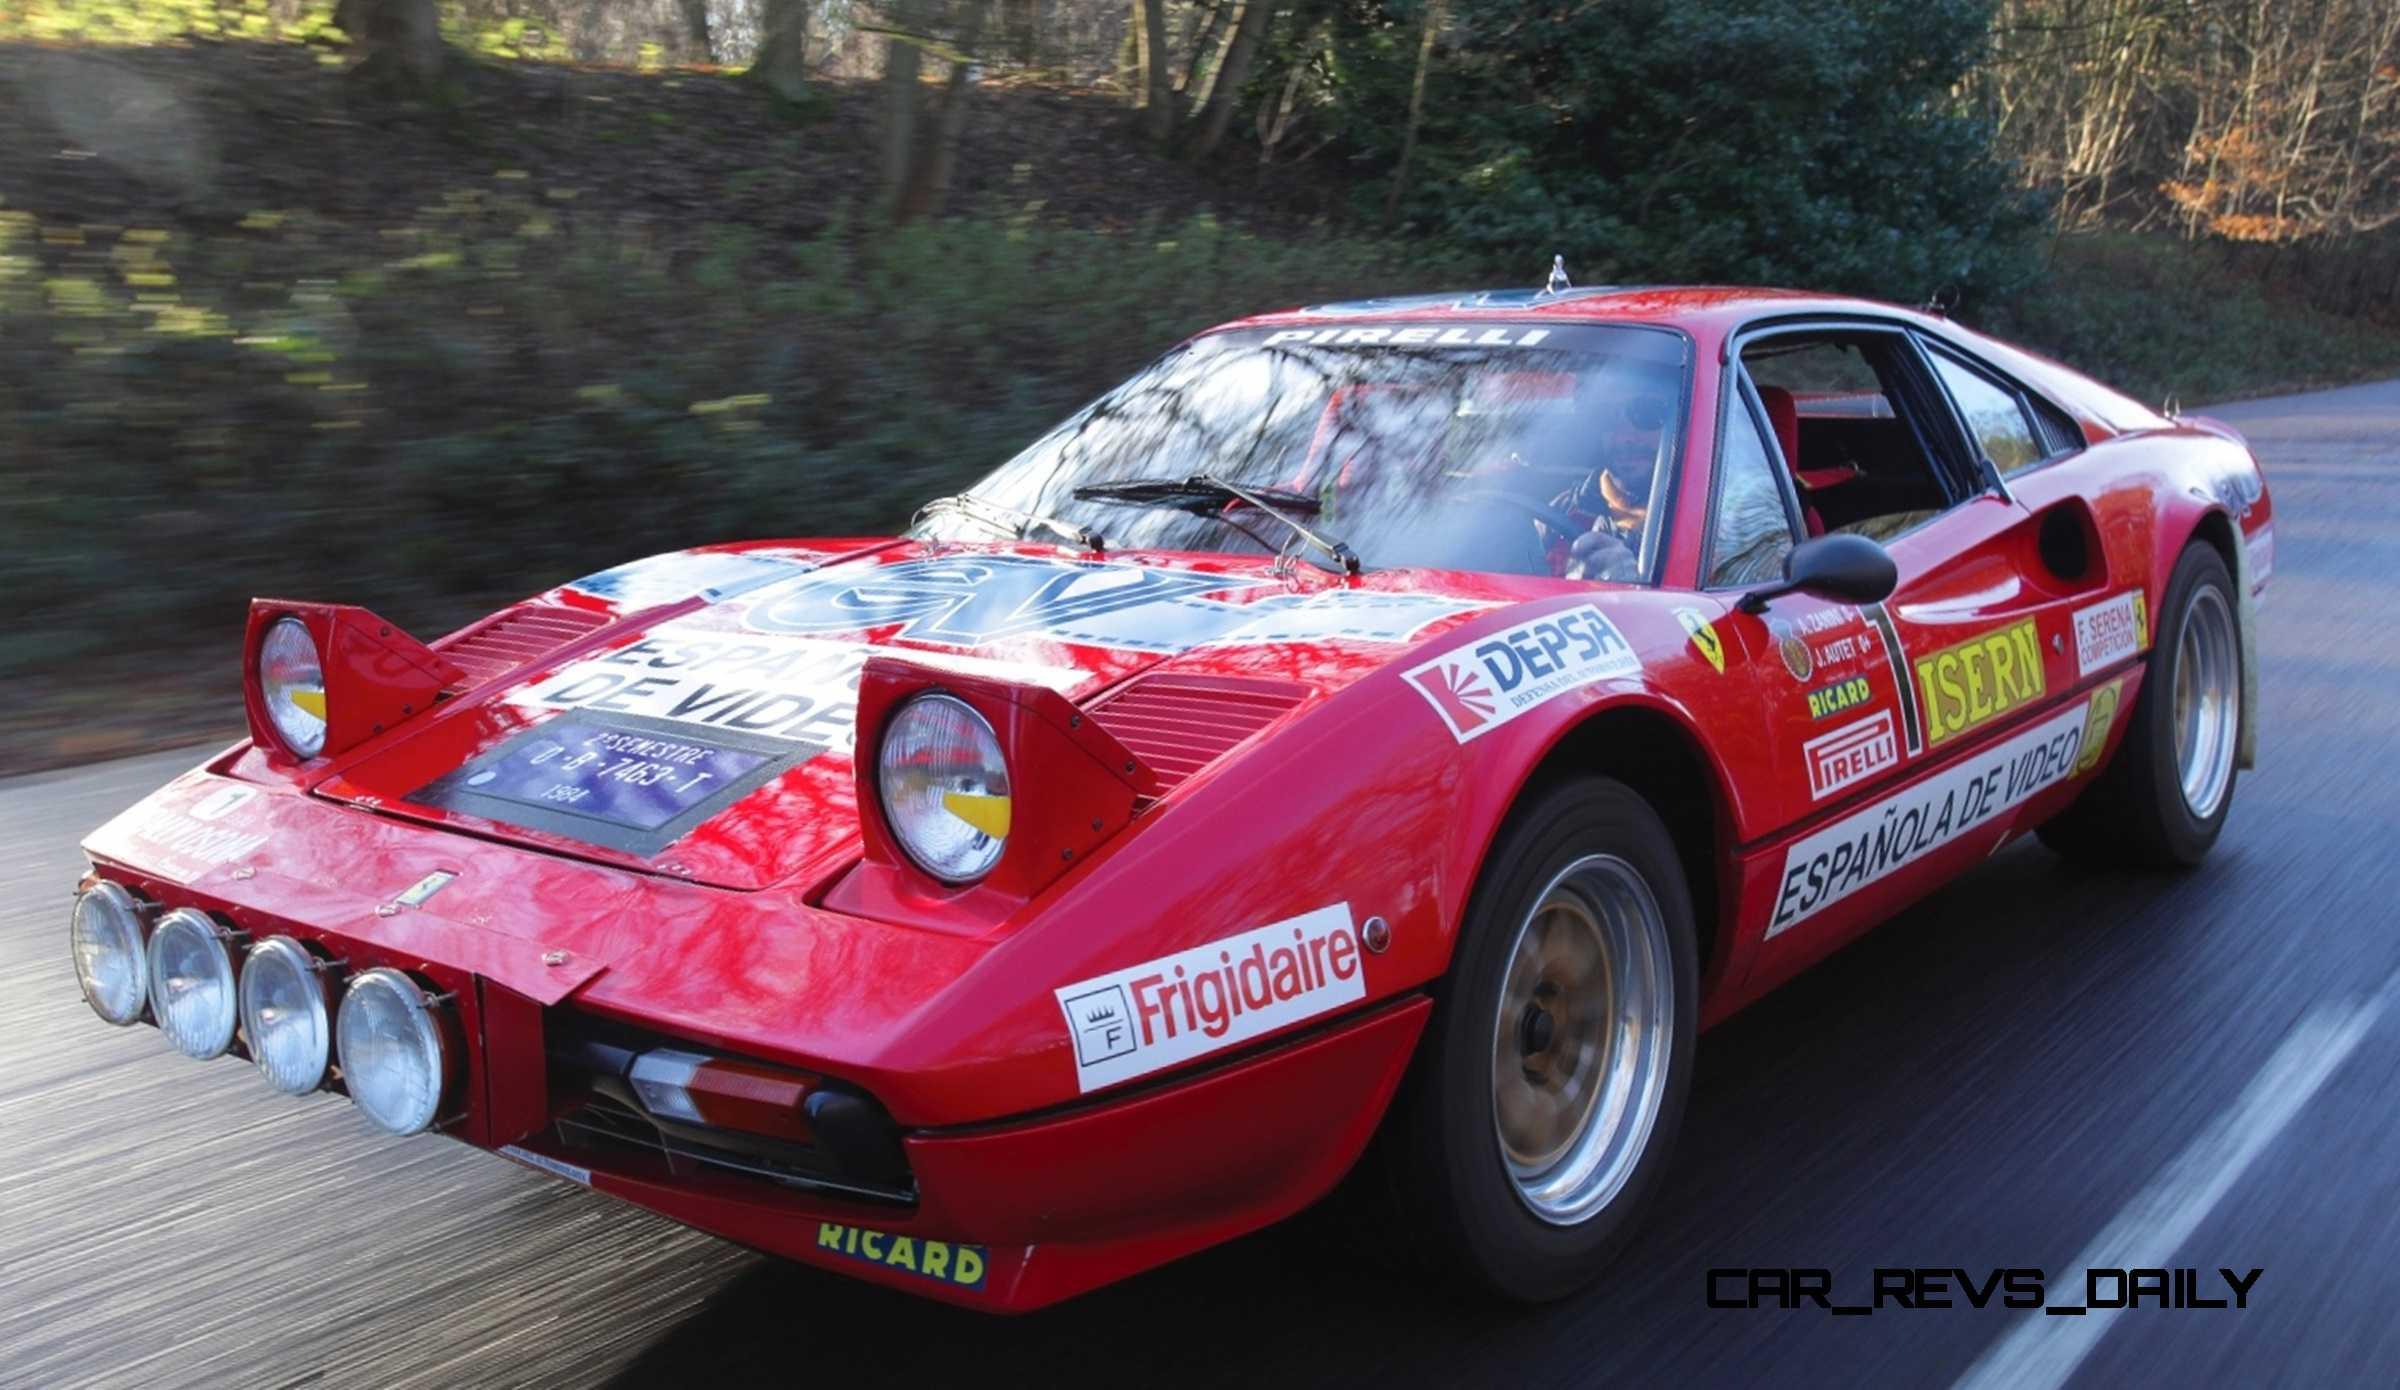 1978 Ferrari 308 Gtb Group B Rally Car